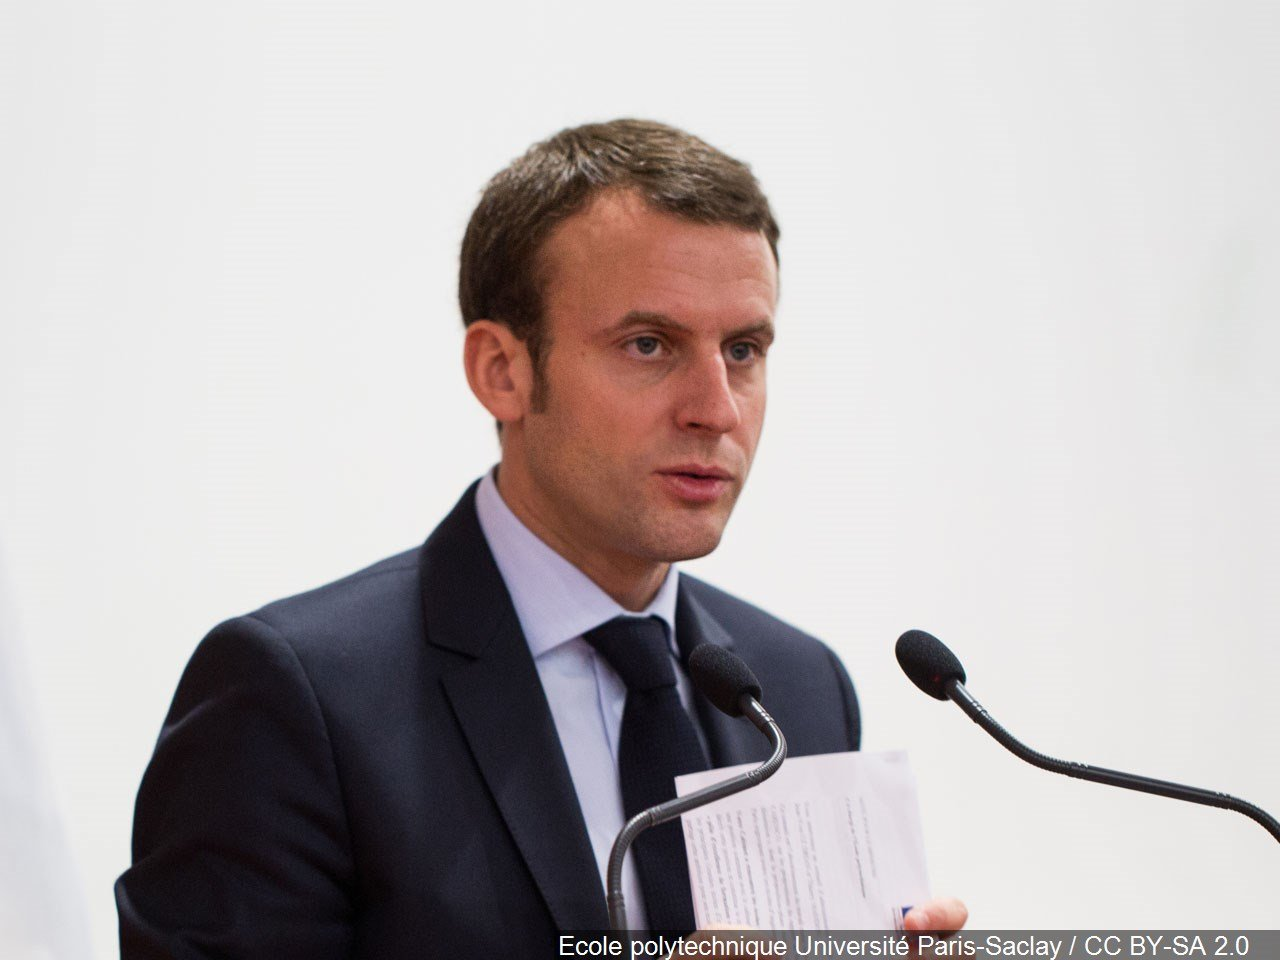 Macron, Le Pen lead first round of French presidential election